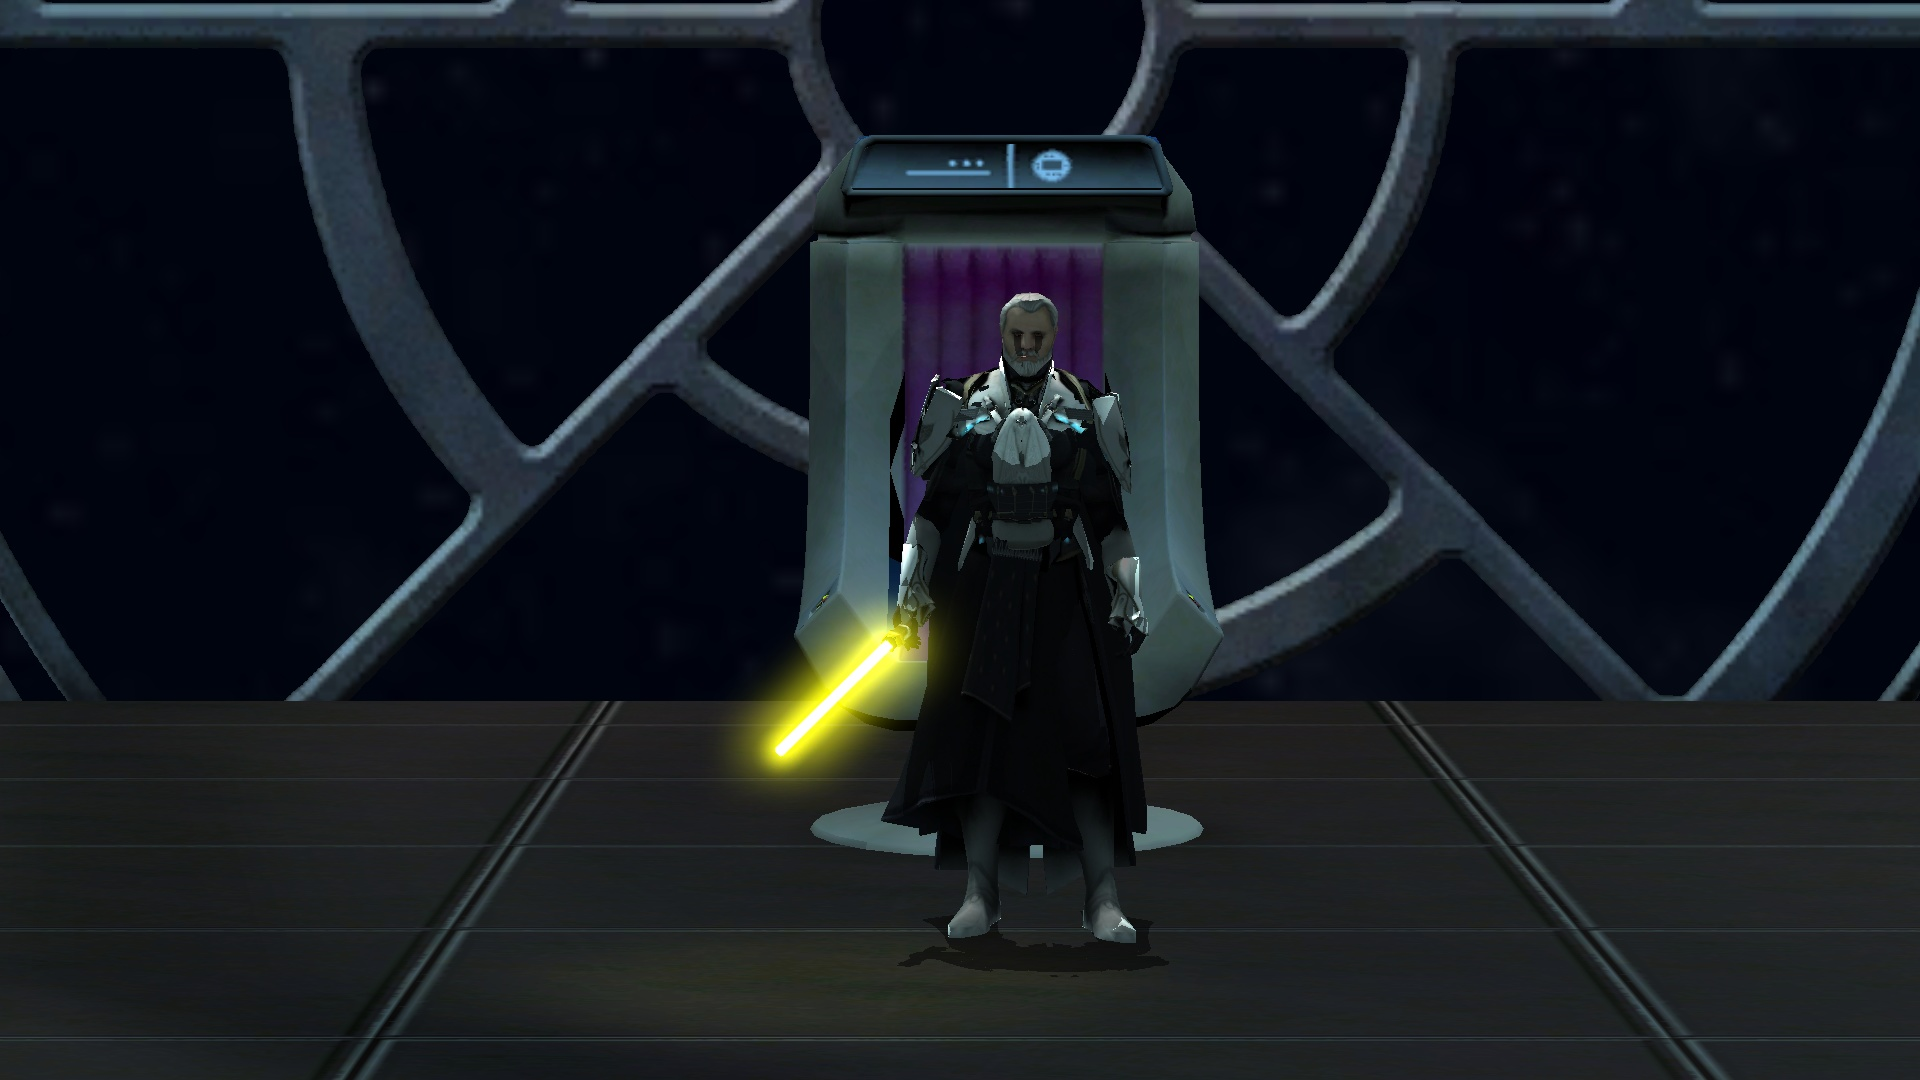 Valkorion The Emperor Image Revan S Adventure Mod For